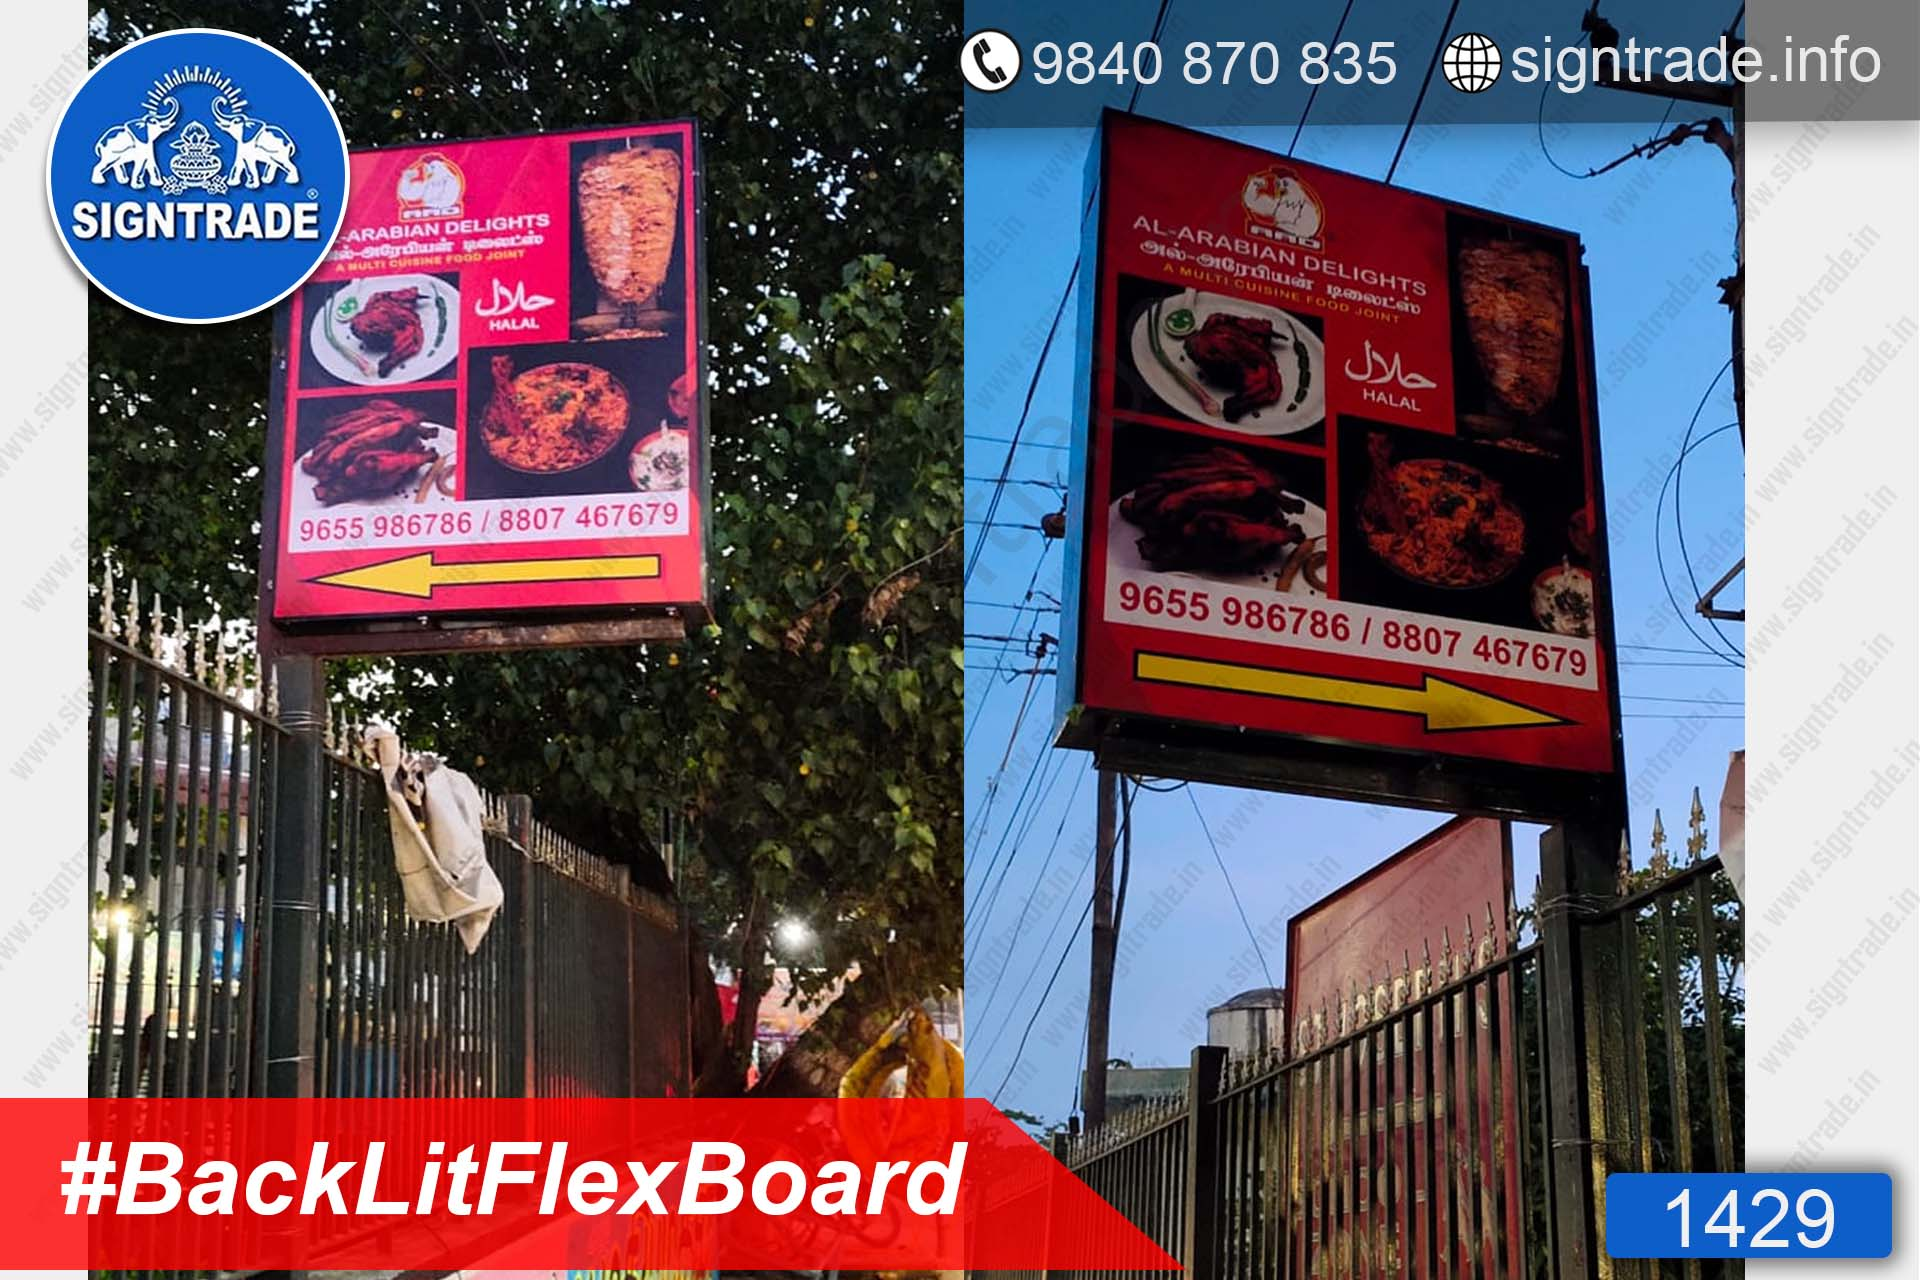 1429, Flex Board, Backlit Flex Board, Star Backlit Flex Board, Backlit Flex Banners, Shop Front Flex Board, Shop Flex Board